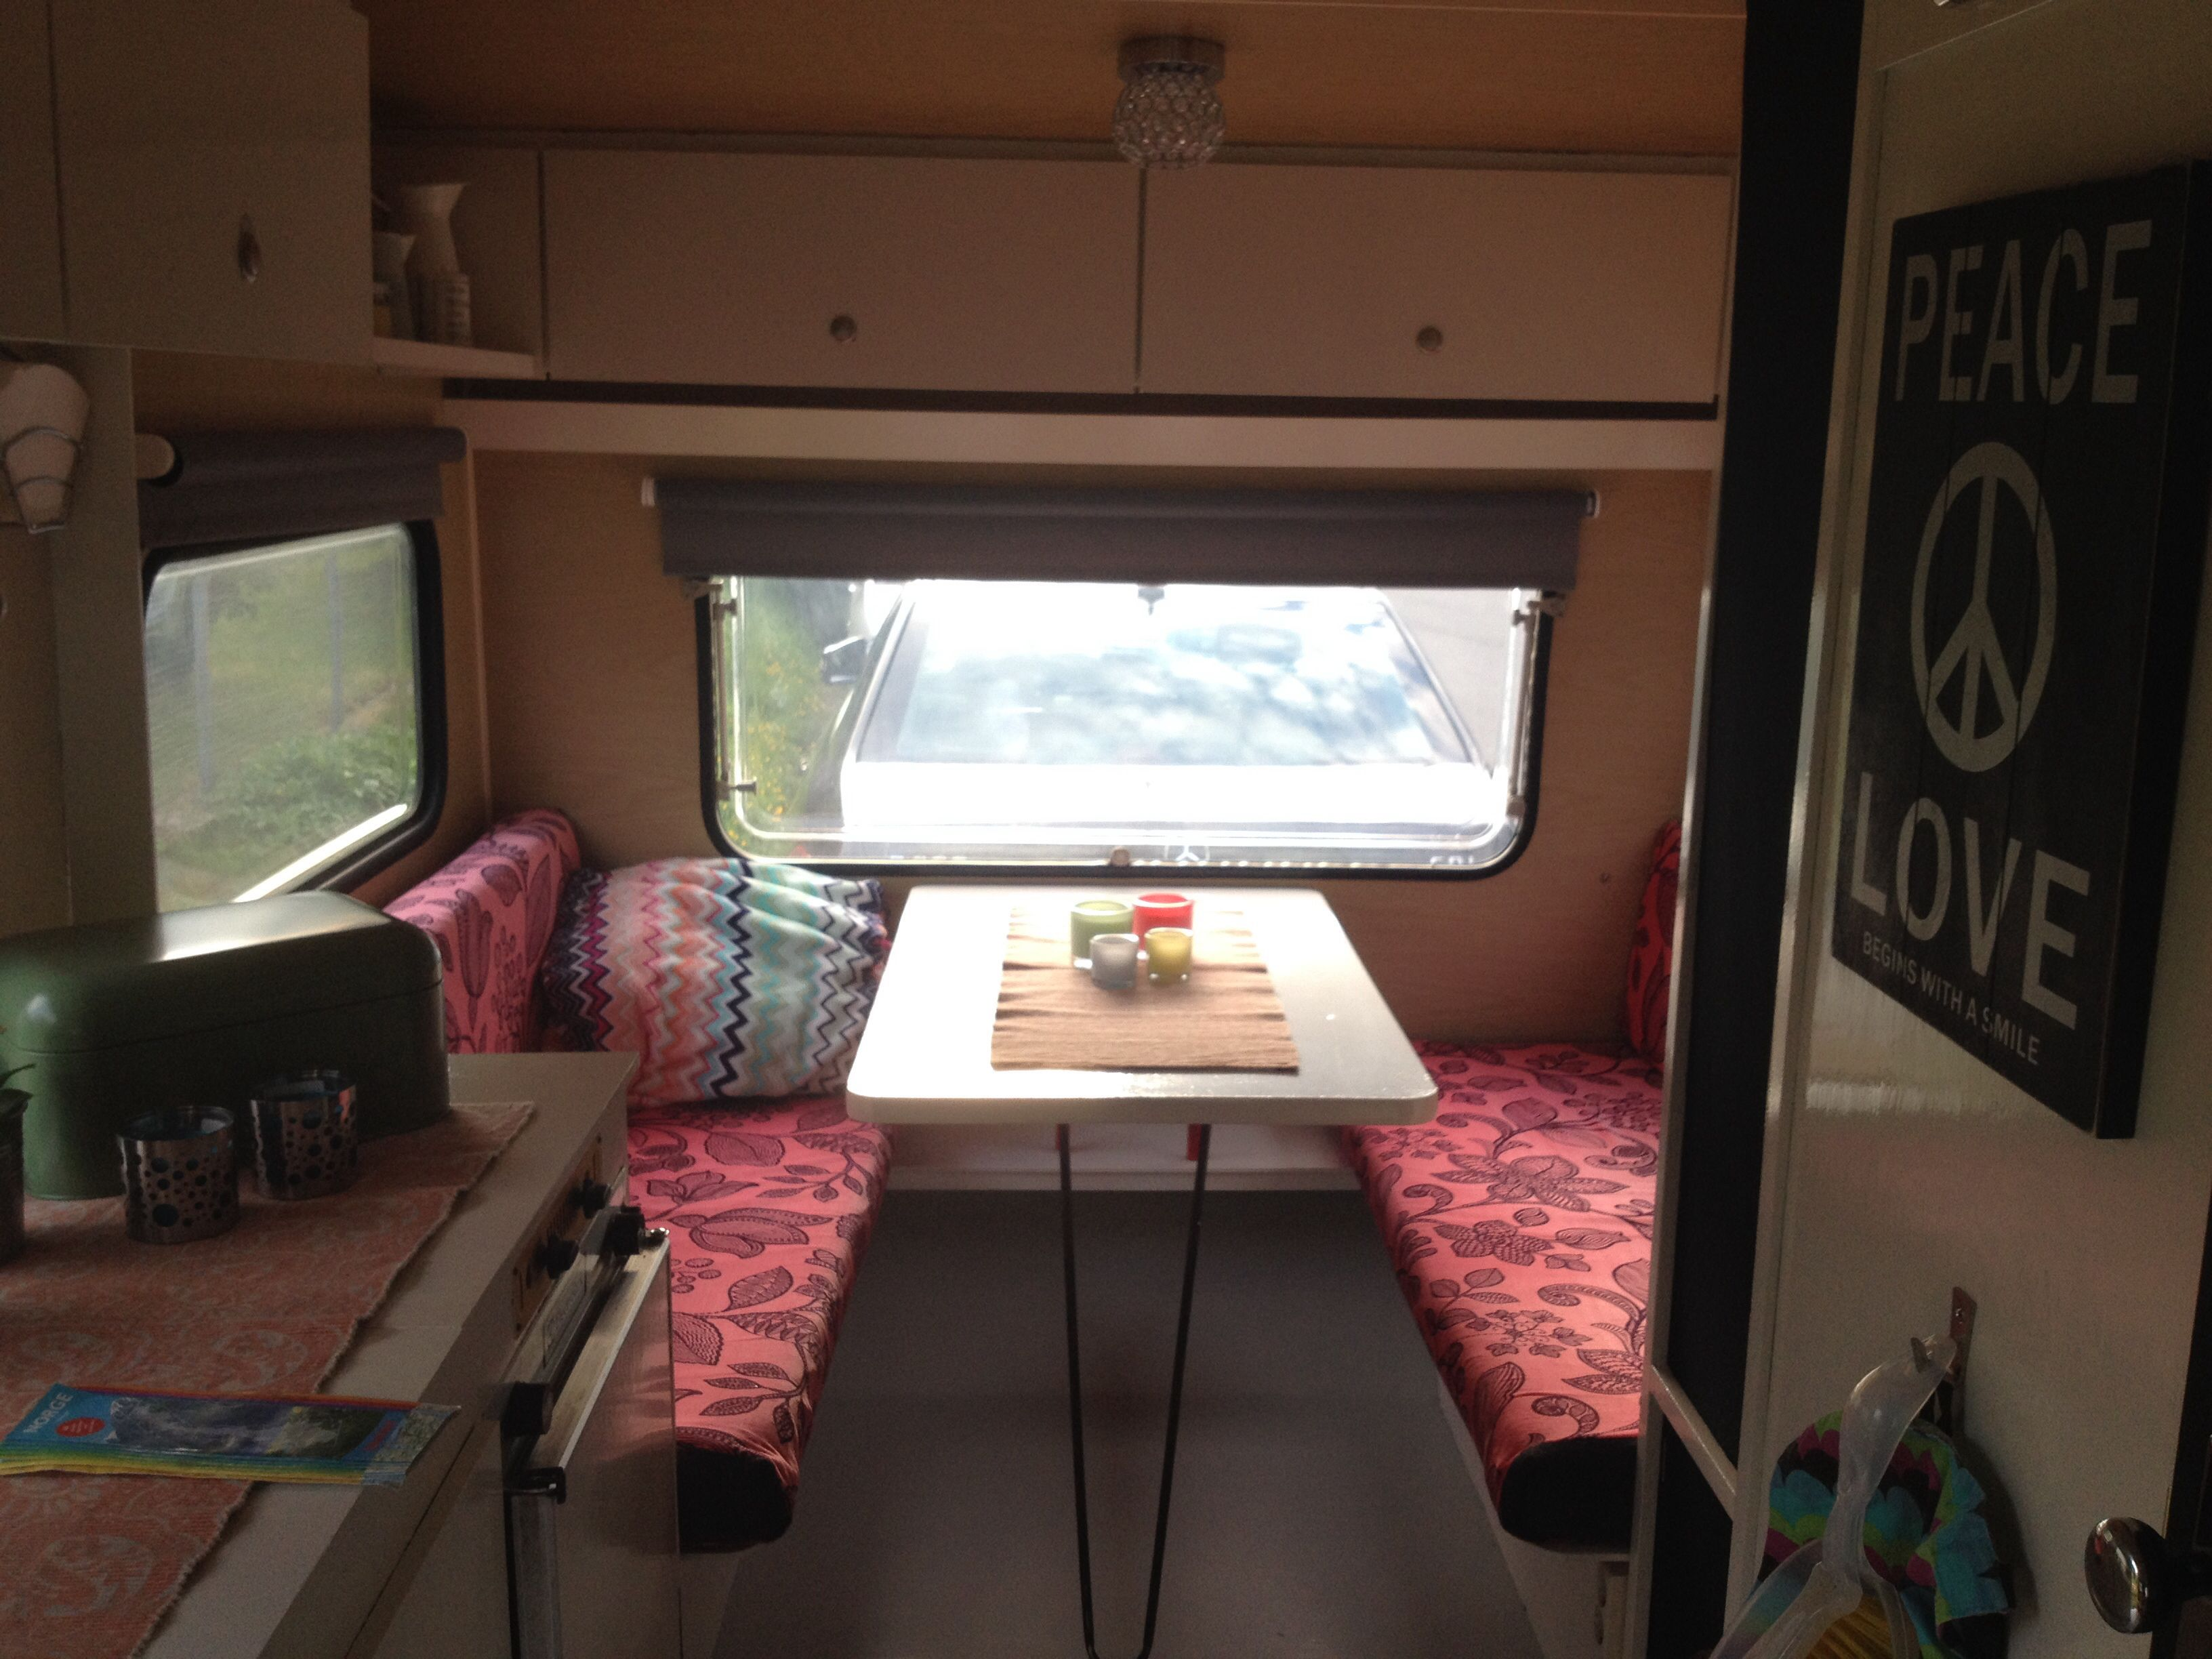 1978 Knaus Caravan Travel Trailer Vintage DIY Retro 70\'s Interior ...